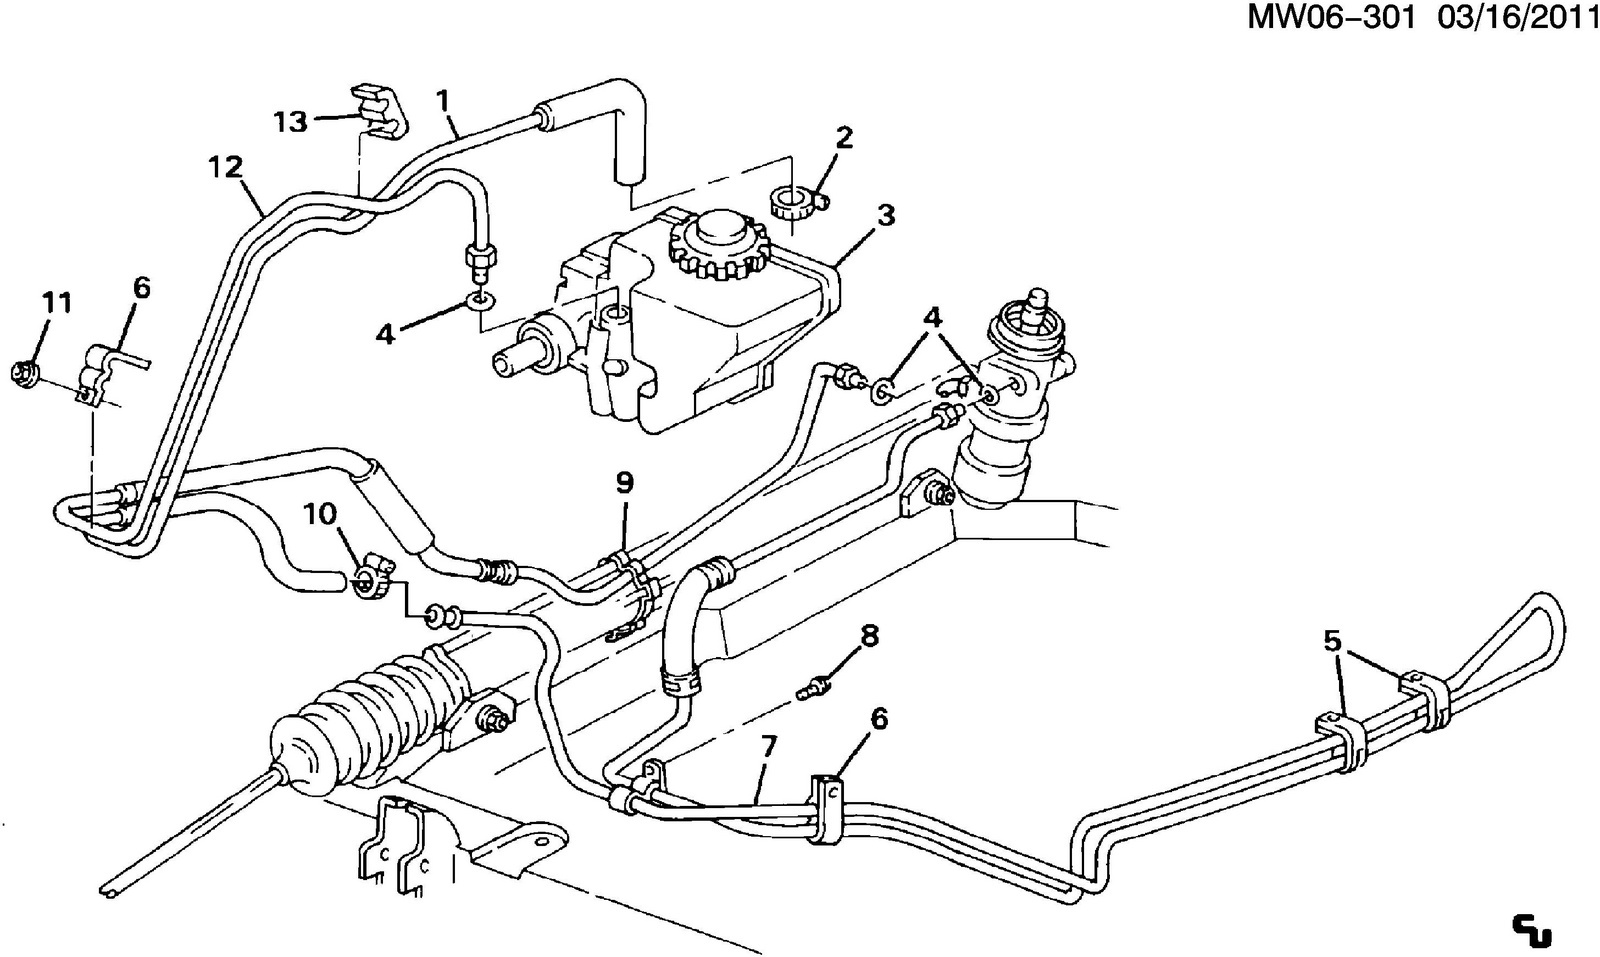 702933 Need Help Lt1 Water Pump also 2007 Pontiac Grand Prix Engine Diagram together with P 0900c15280089a44 together with 7qg2l Buick Lesabre Limited Hi How Change Power Steering in addition Vacuum Line Diagram 3800. on buick 3800 pumps